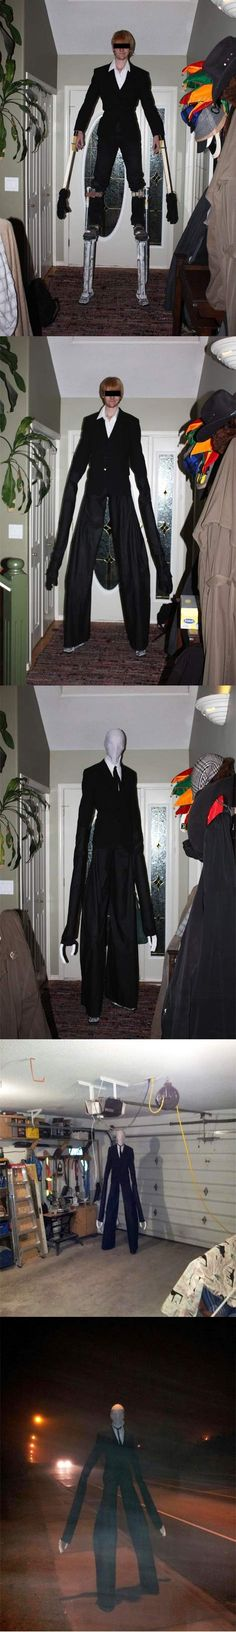 How to be Slenderman in a few easy steps